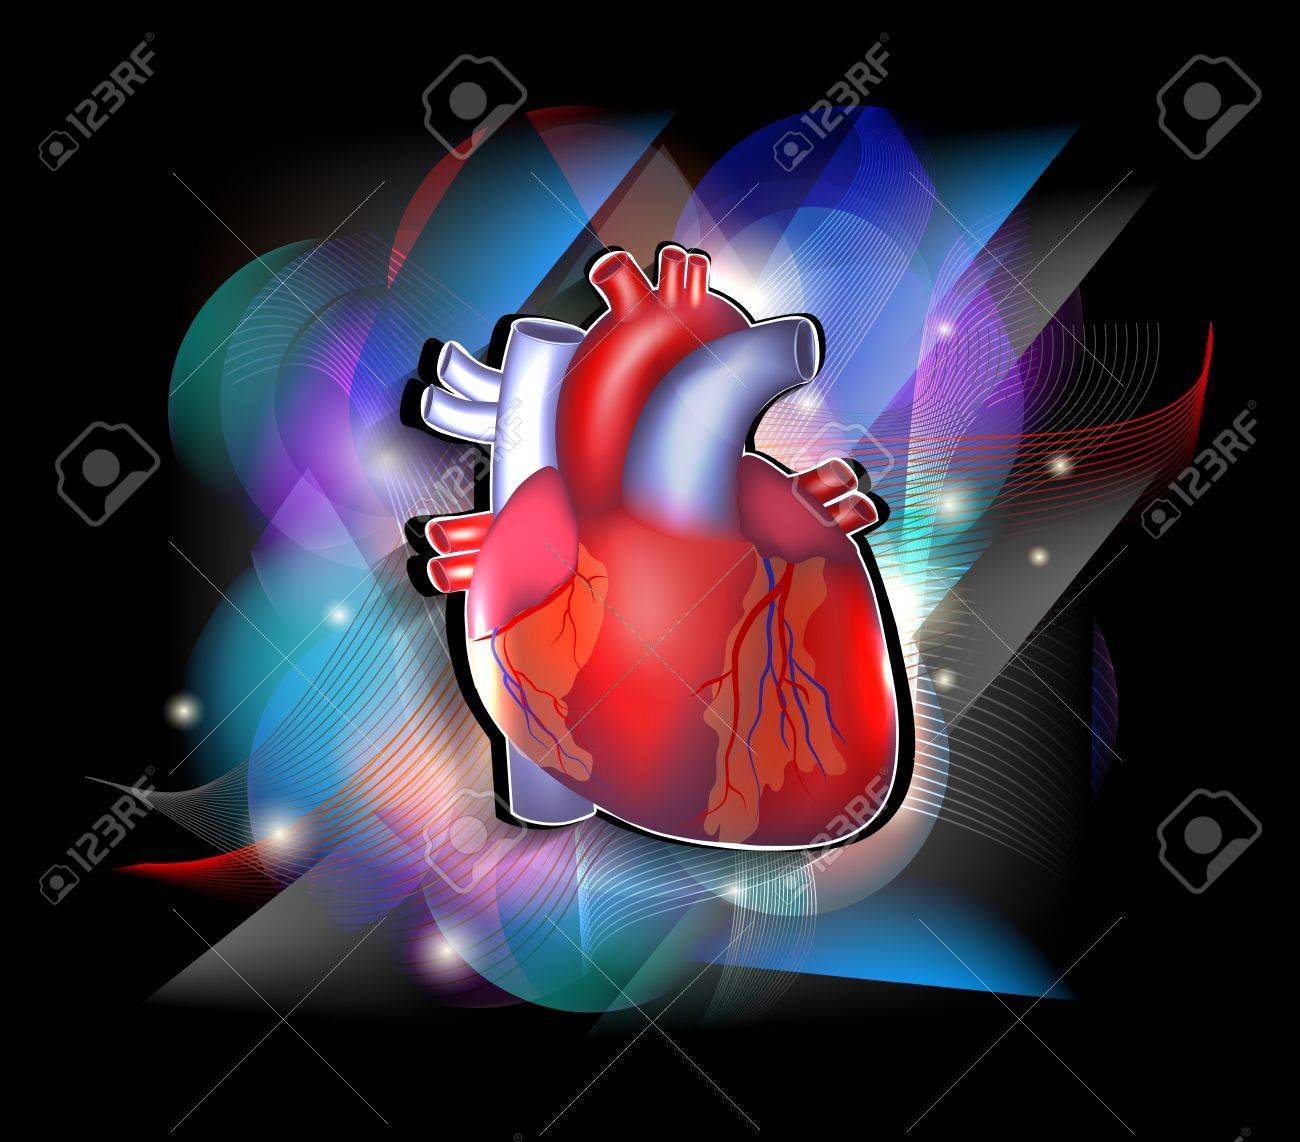 Bright Cardiology Poster, Human Heart Anatomy On A Vivid And ...